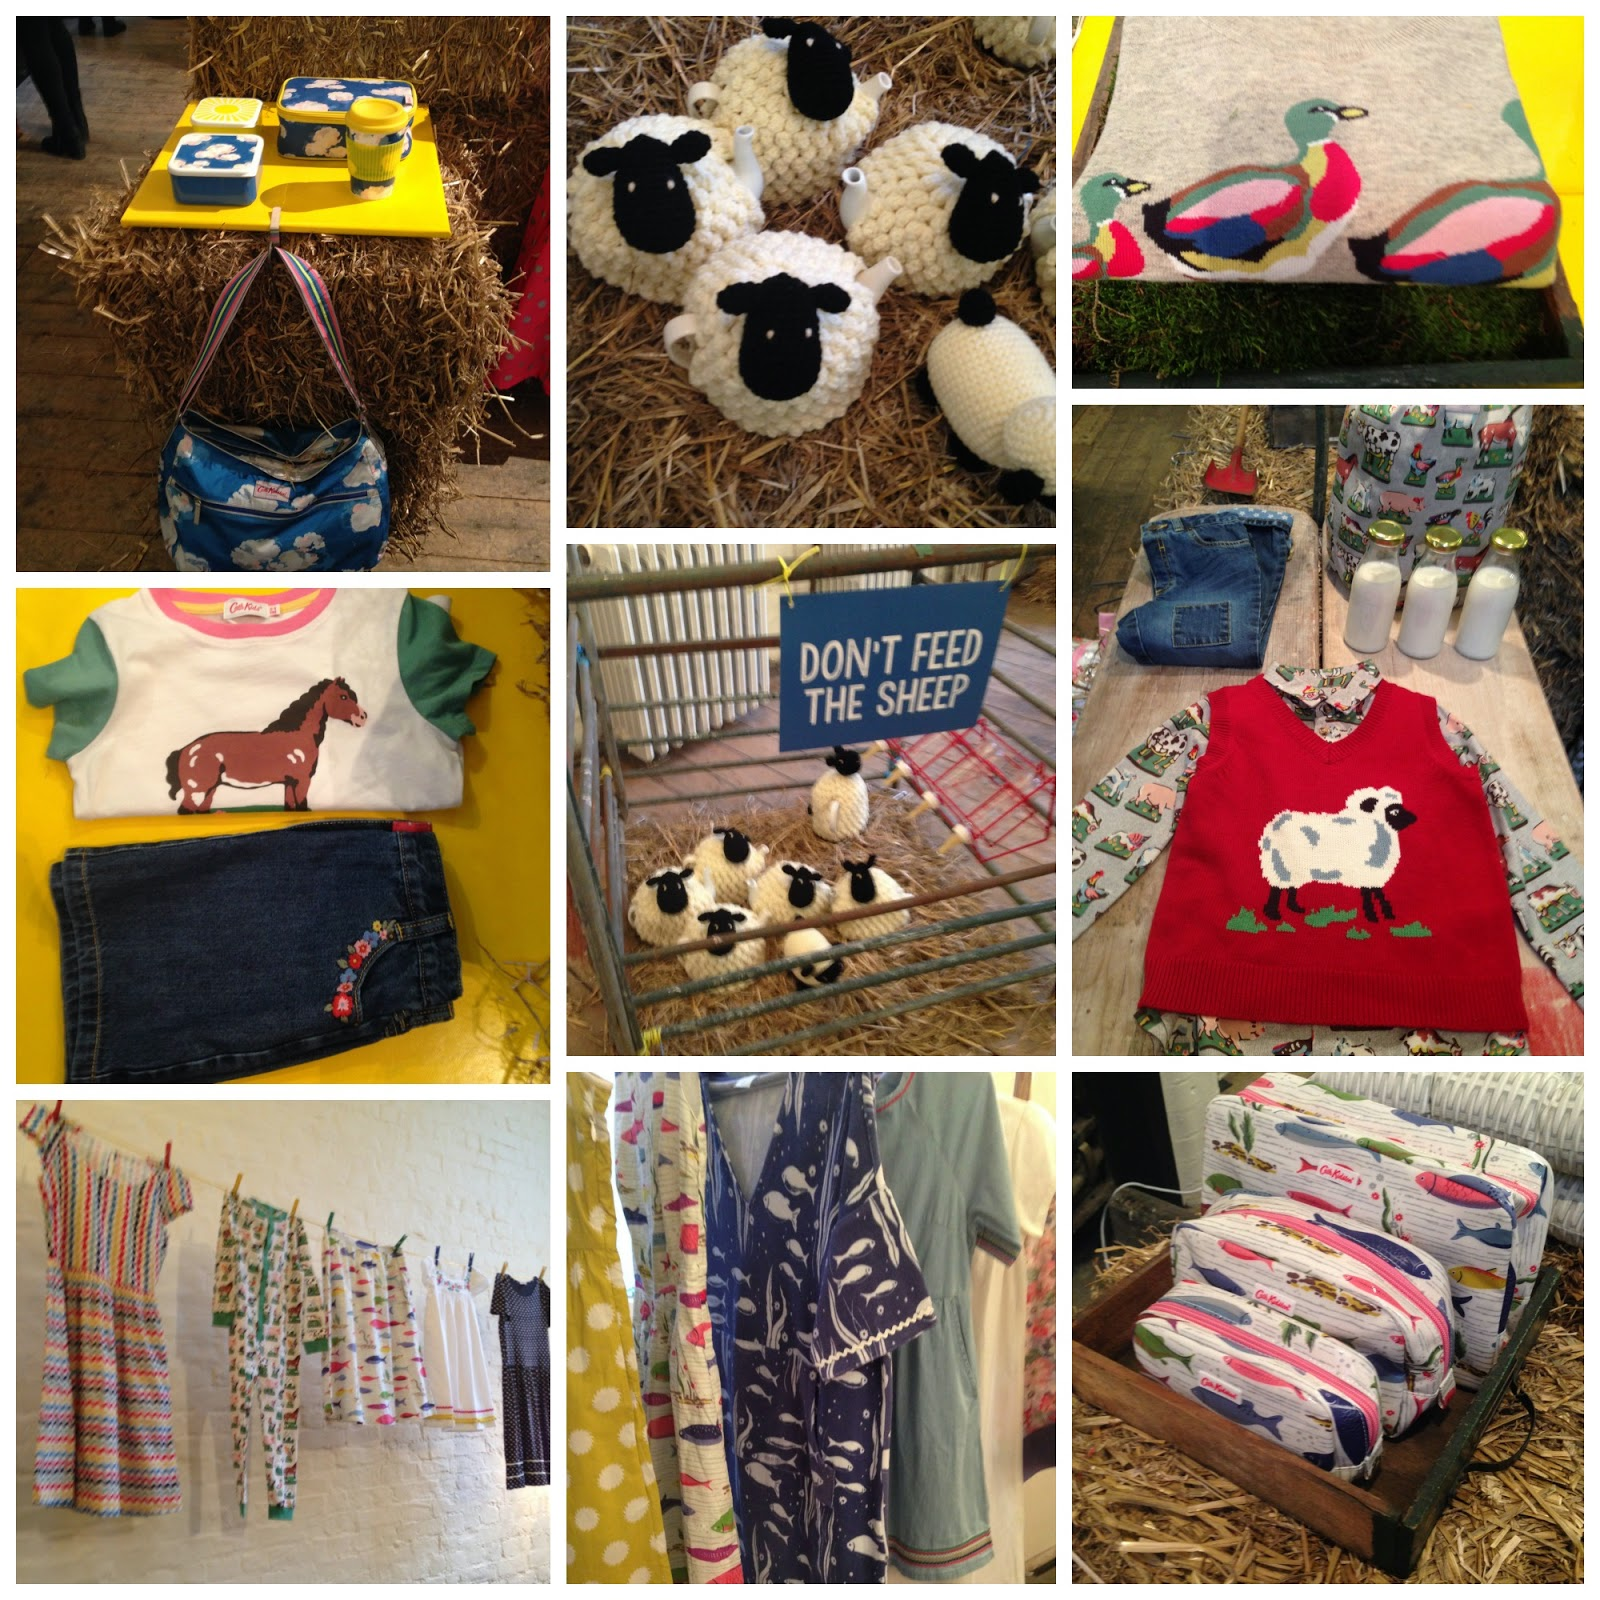 mamasVIB - A sneaky peak at S/S 2015 - and what we have our eyes on! | Mothercare | Little Bird | Jools Oliver | Marks & Spencer | Little Royals | new collection | new season | spring summer 15 | press shows | river island mini | cath kidston | monsoon | Boden | boden mini | clothes |kids fashion | bonita turner | stylist | mamasVIB | new collections | sneak peak at spring | new | kids style | ss15 | blogger | mummy bloggers |